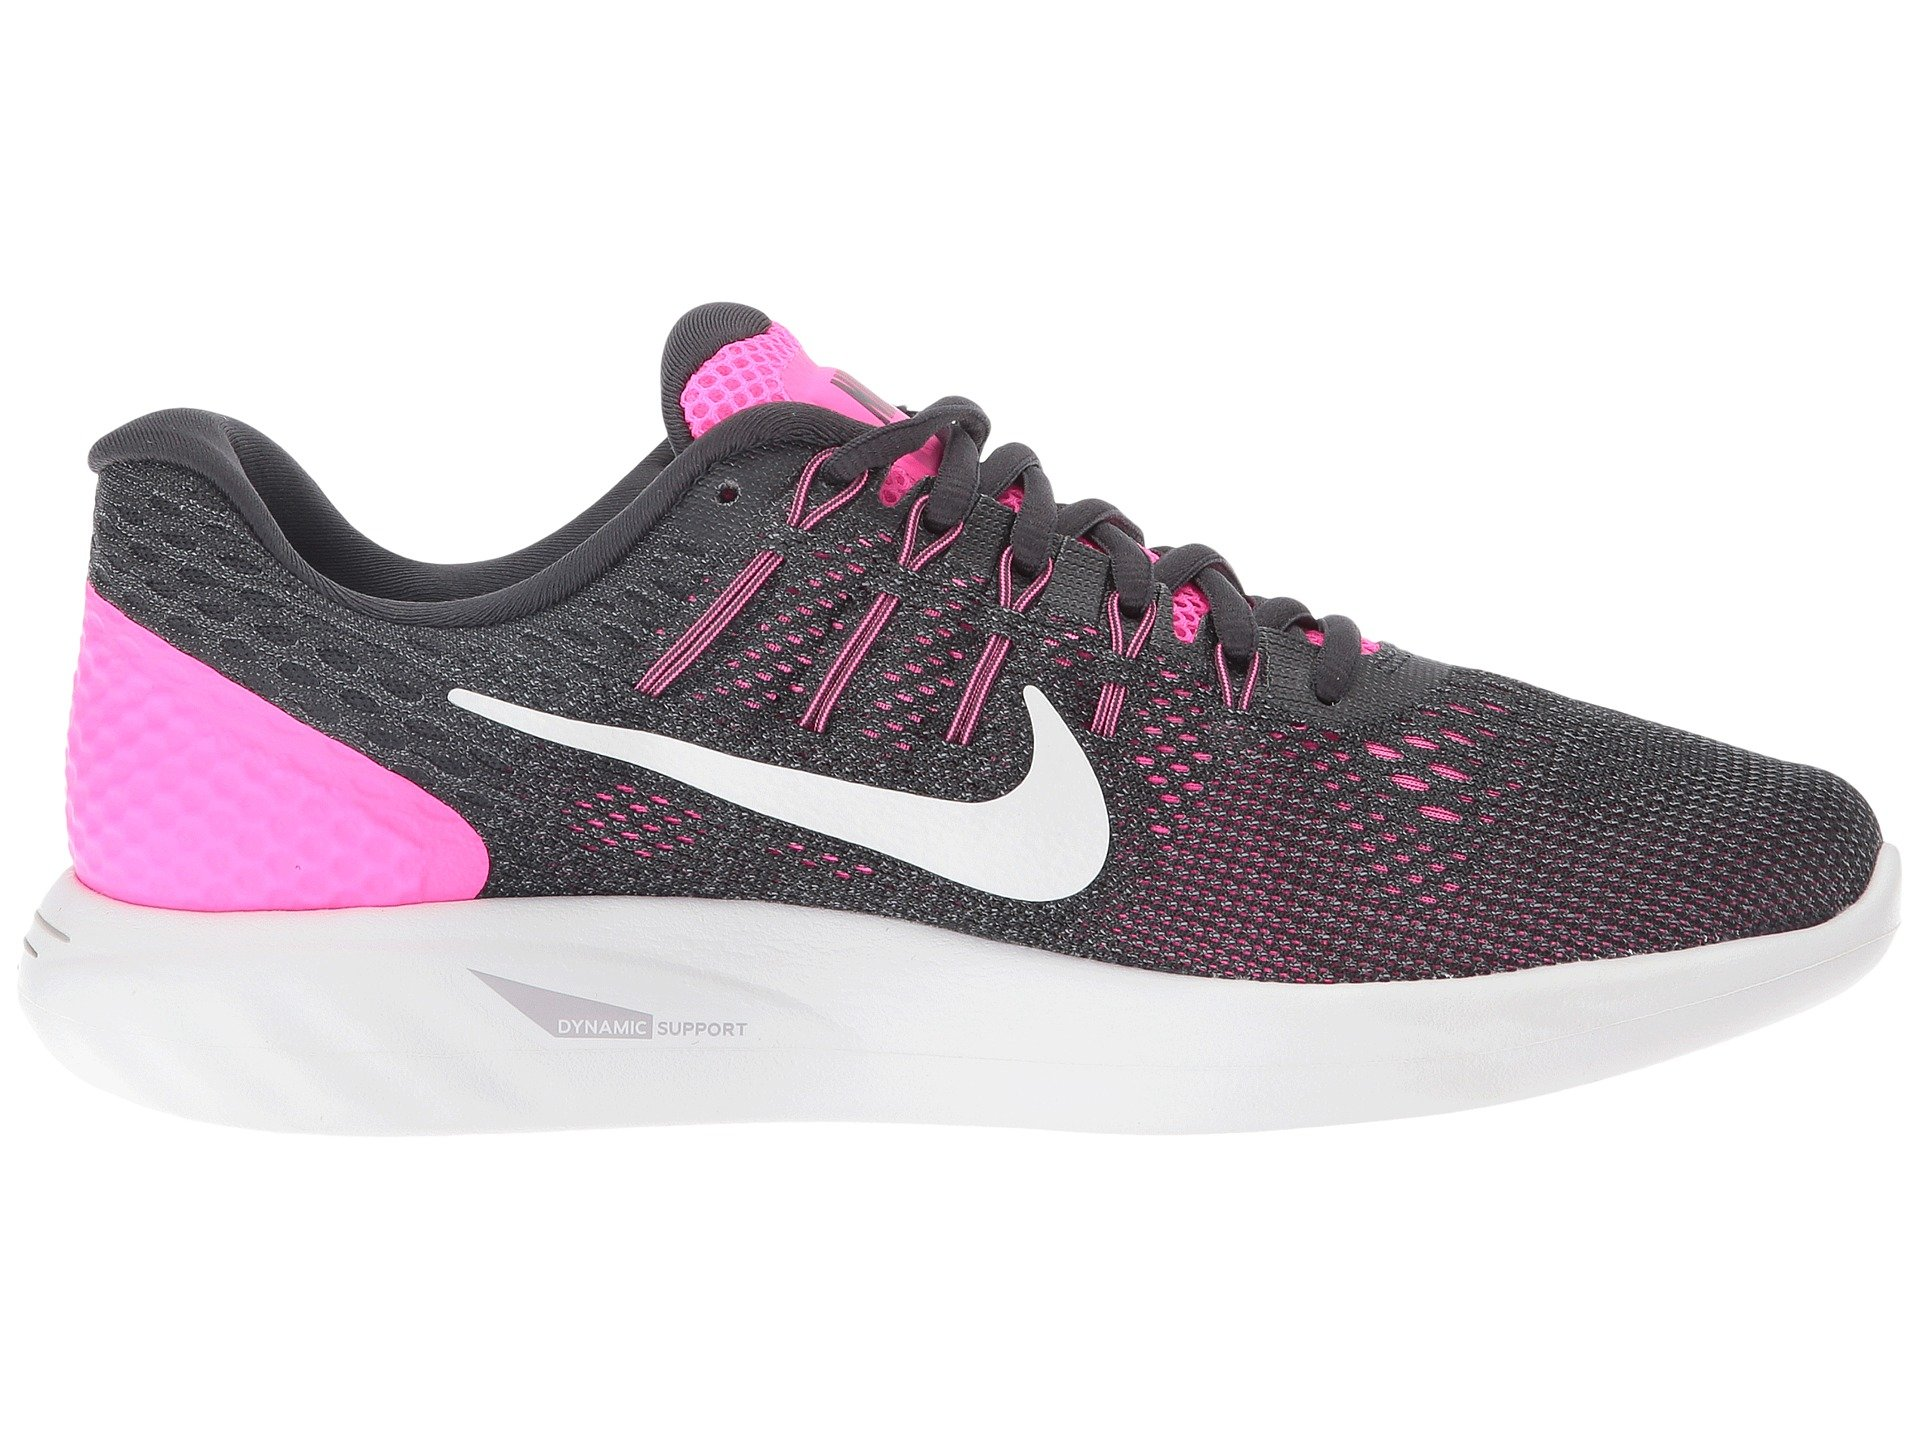 Nike Women S Lunarglide Hot Pink Black And Green Athletic Shoes